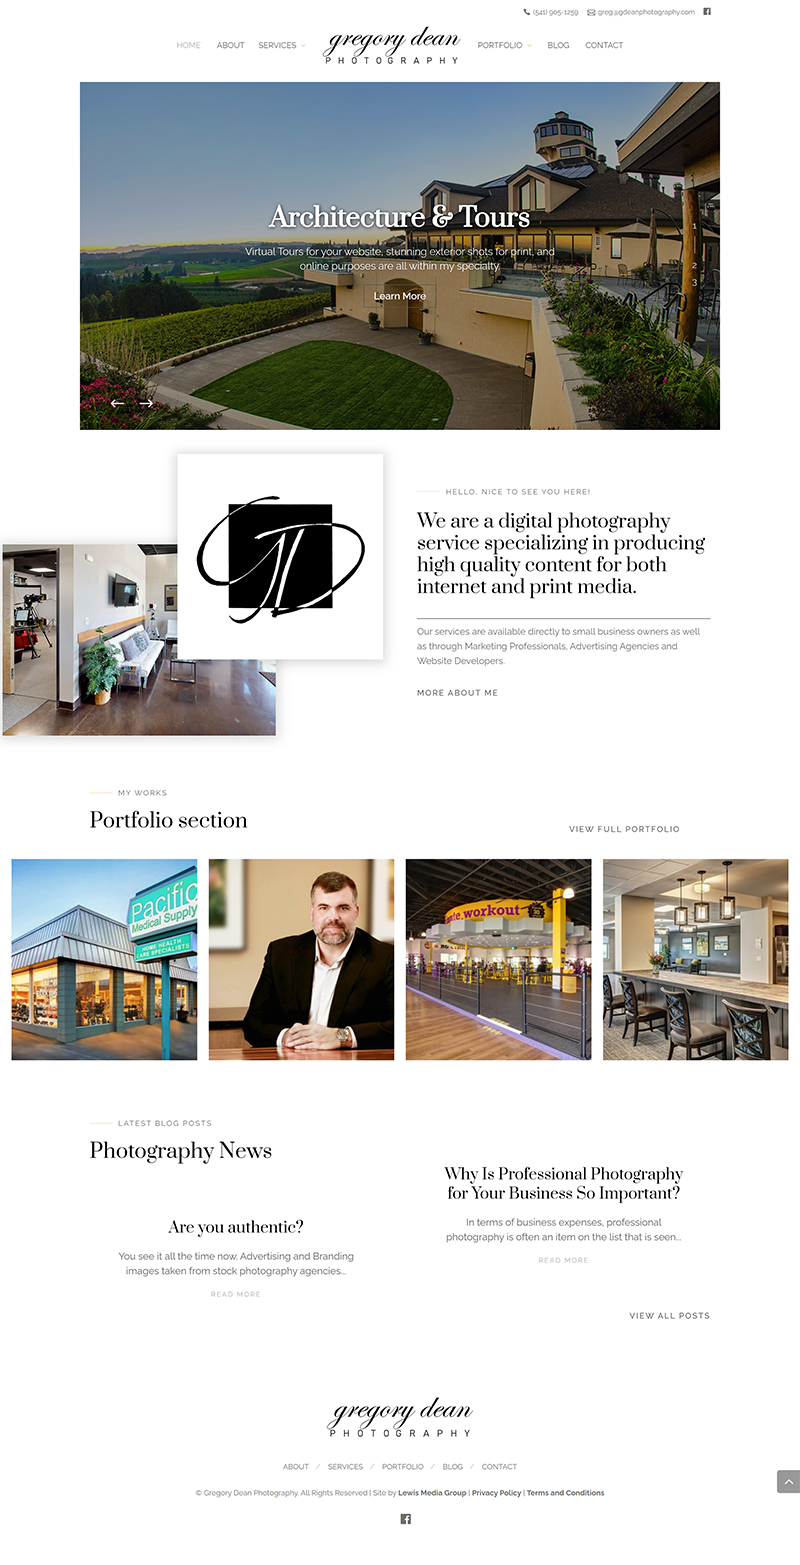 Gregory Dean Photography Home page after third redesign and current home page